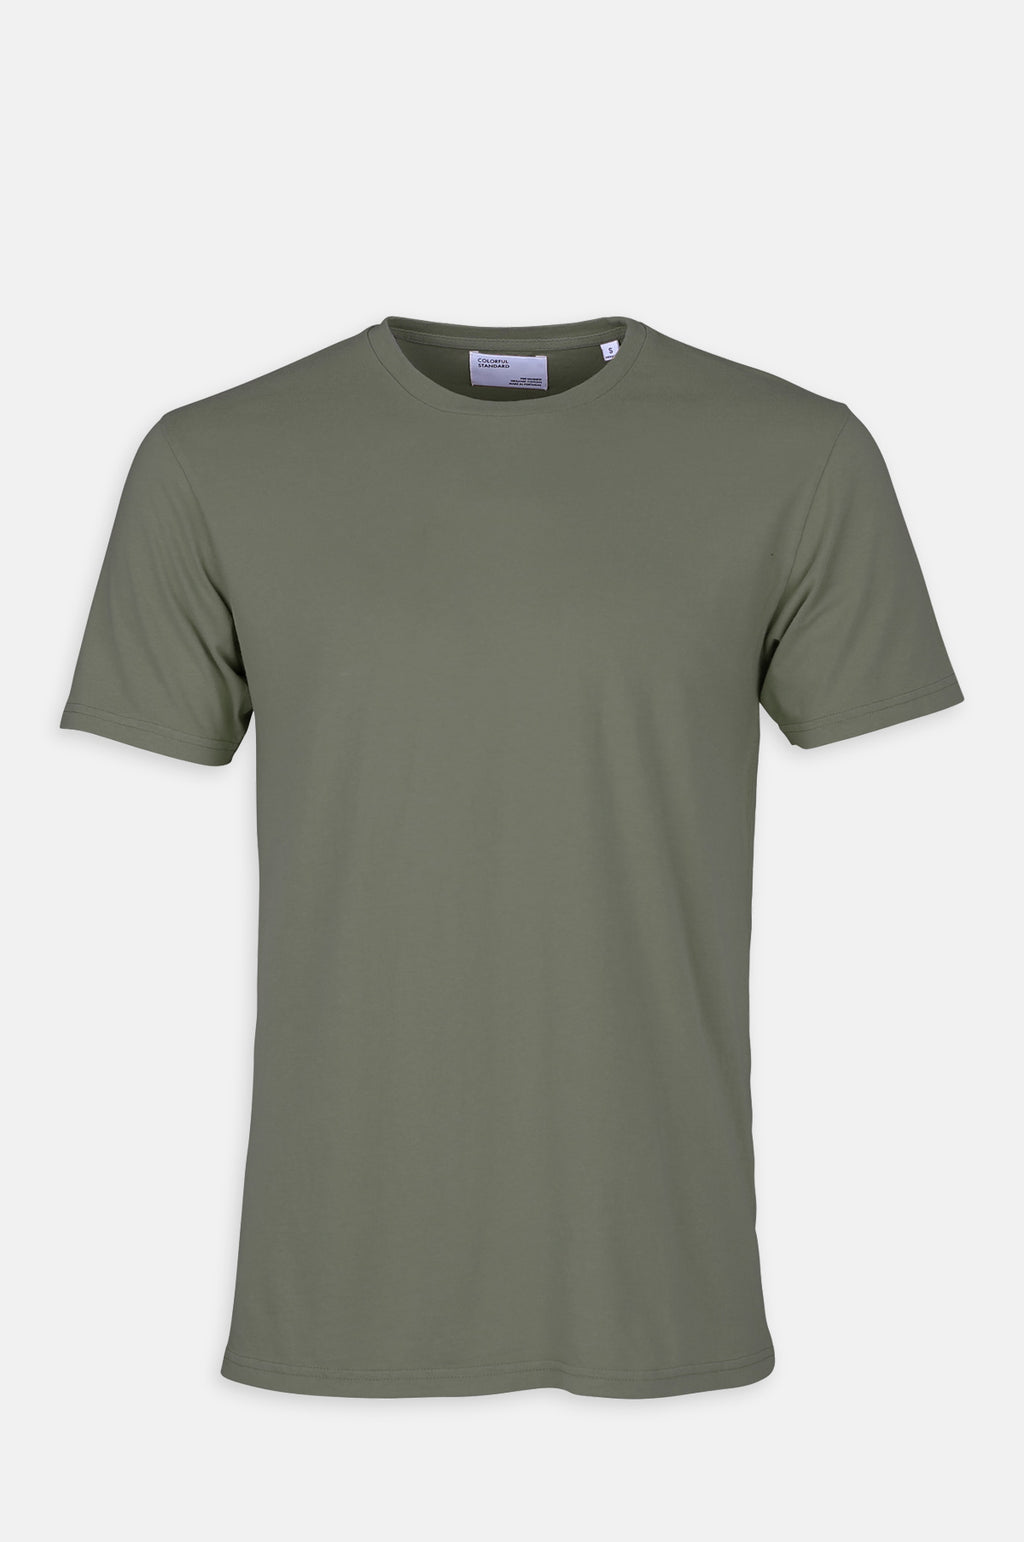 Classic Organic T Shirt in Dusty Olive